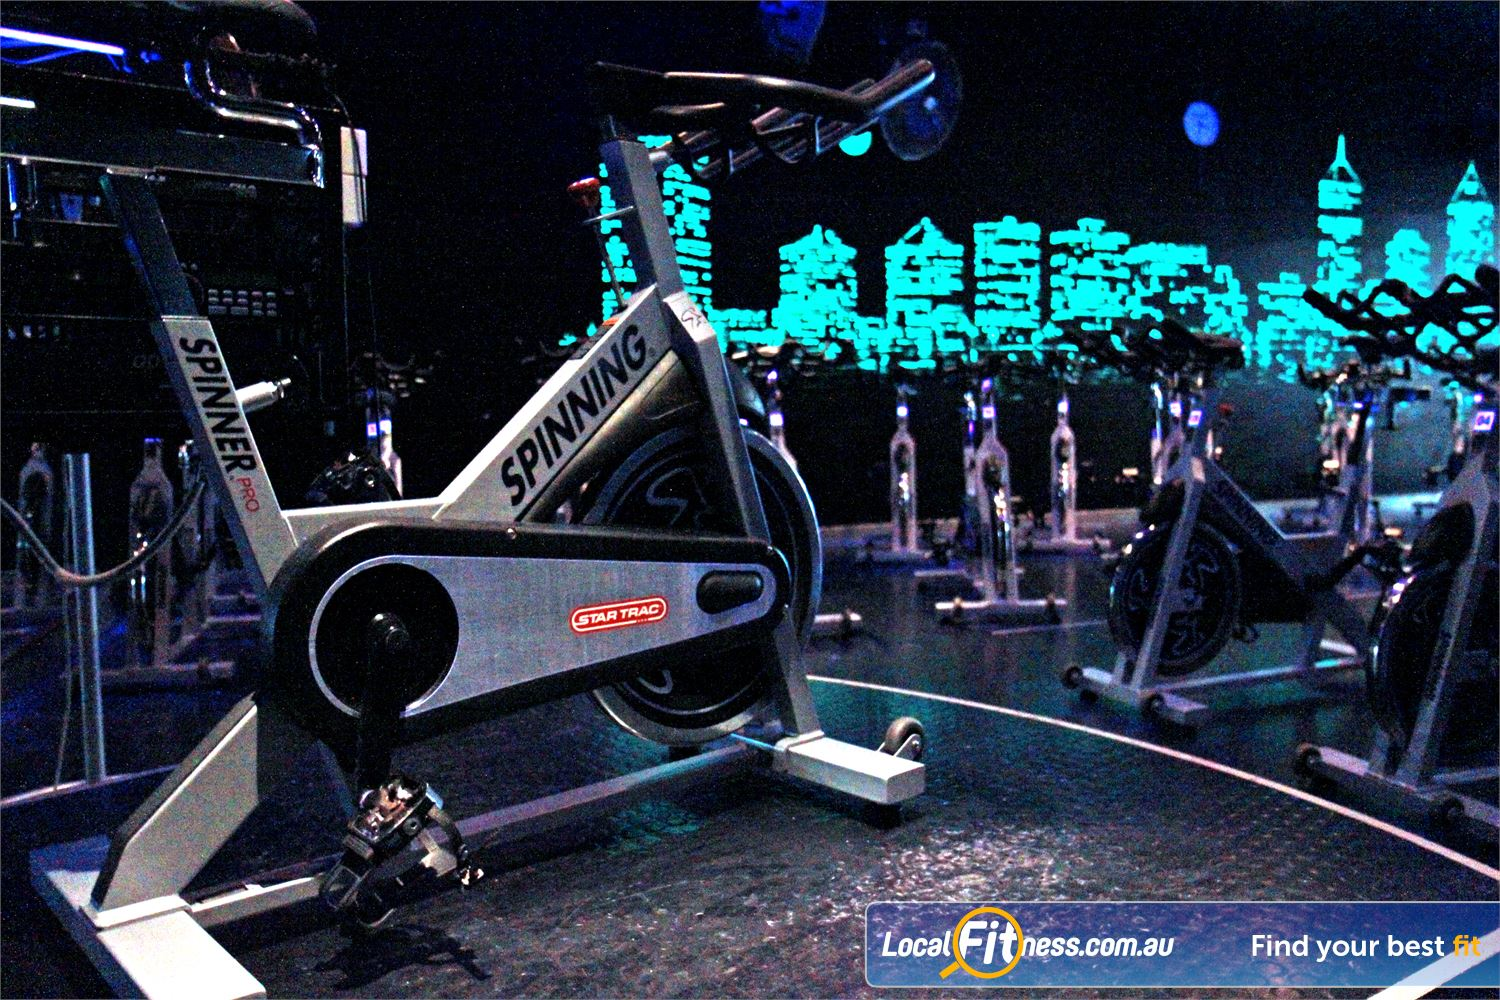 Goodlife Health Clubs Cannington Goodlife Cannington includes our signature Cosmic spin cycle classes.